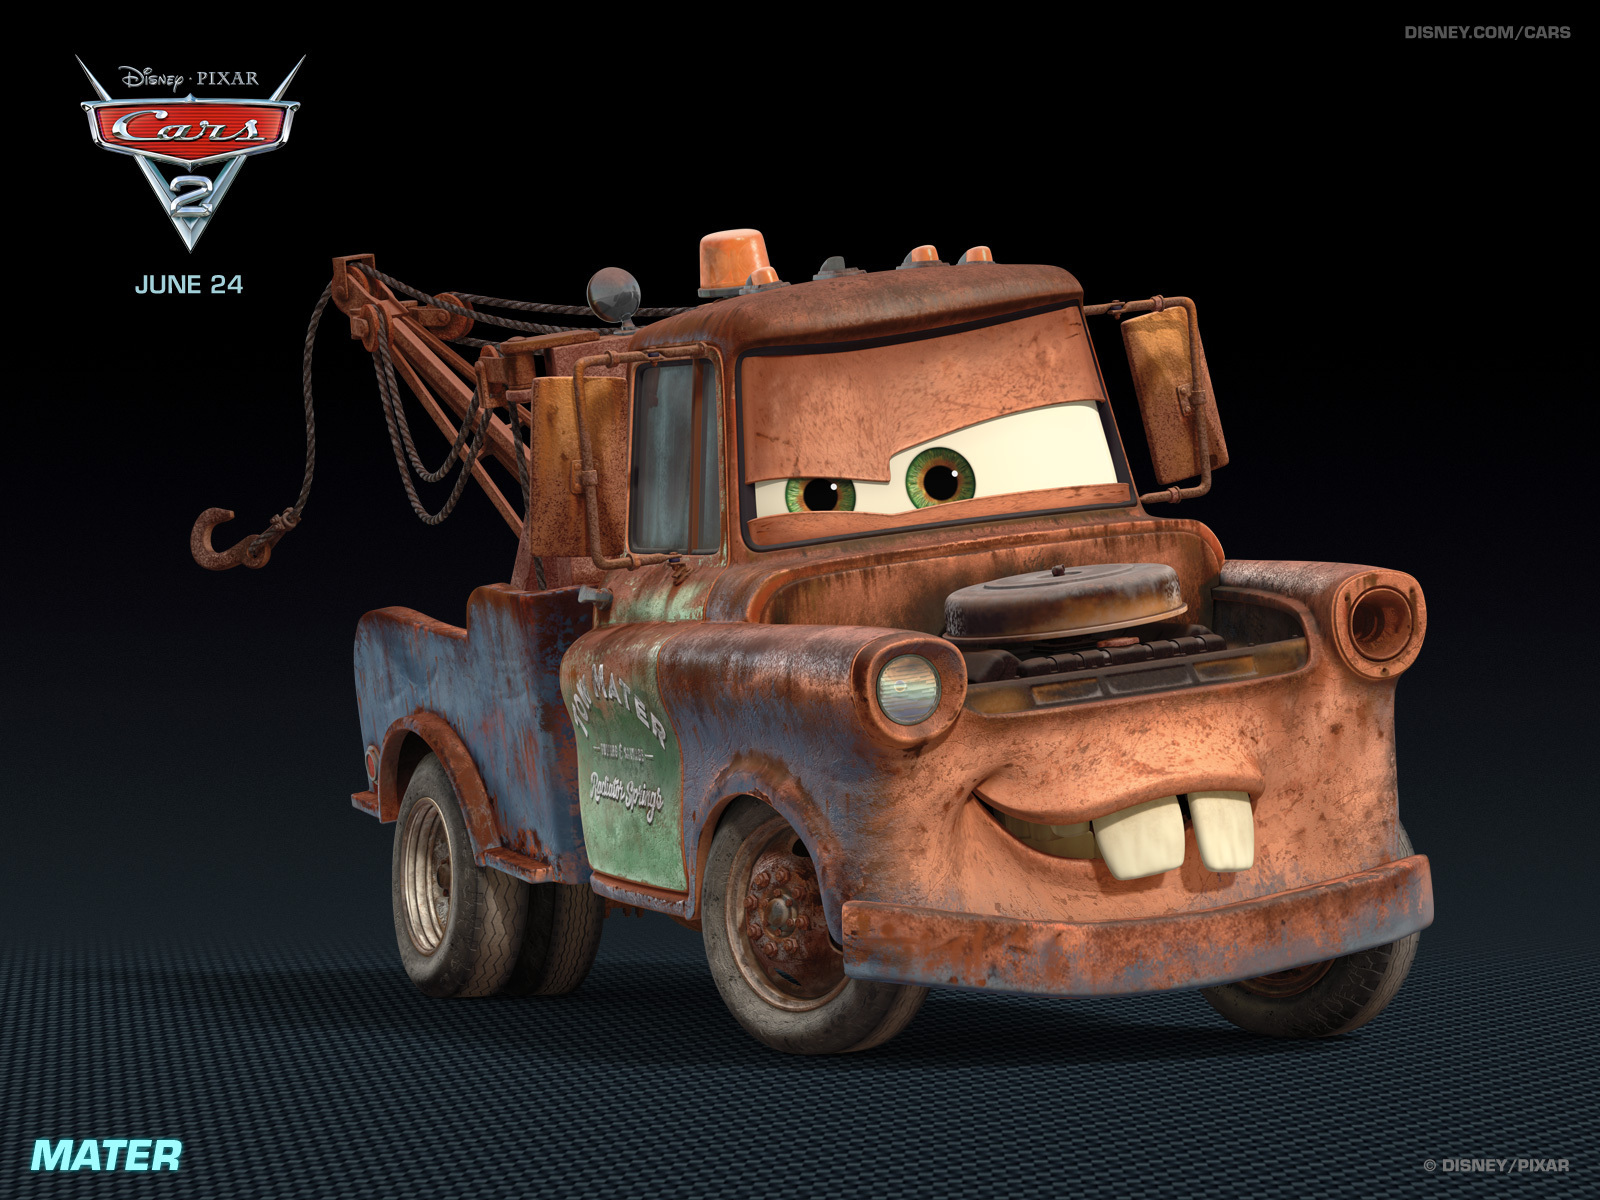 Mater pictures - Mater the Tow Truck Photo (21162753) - Fanpop